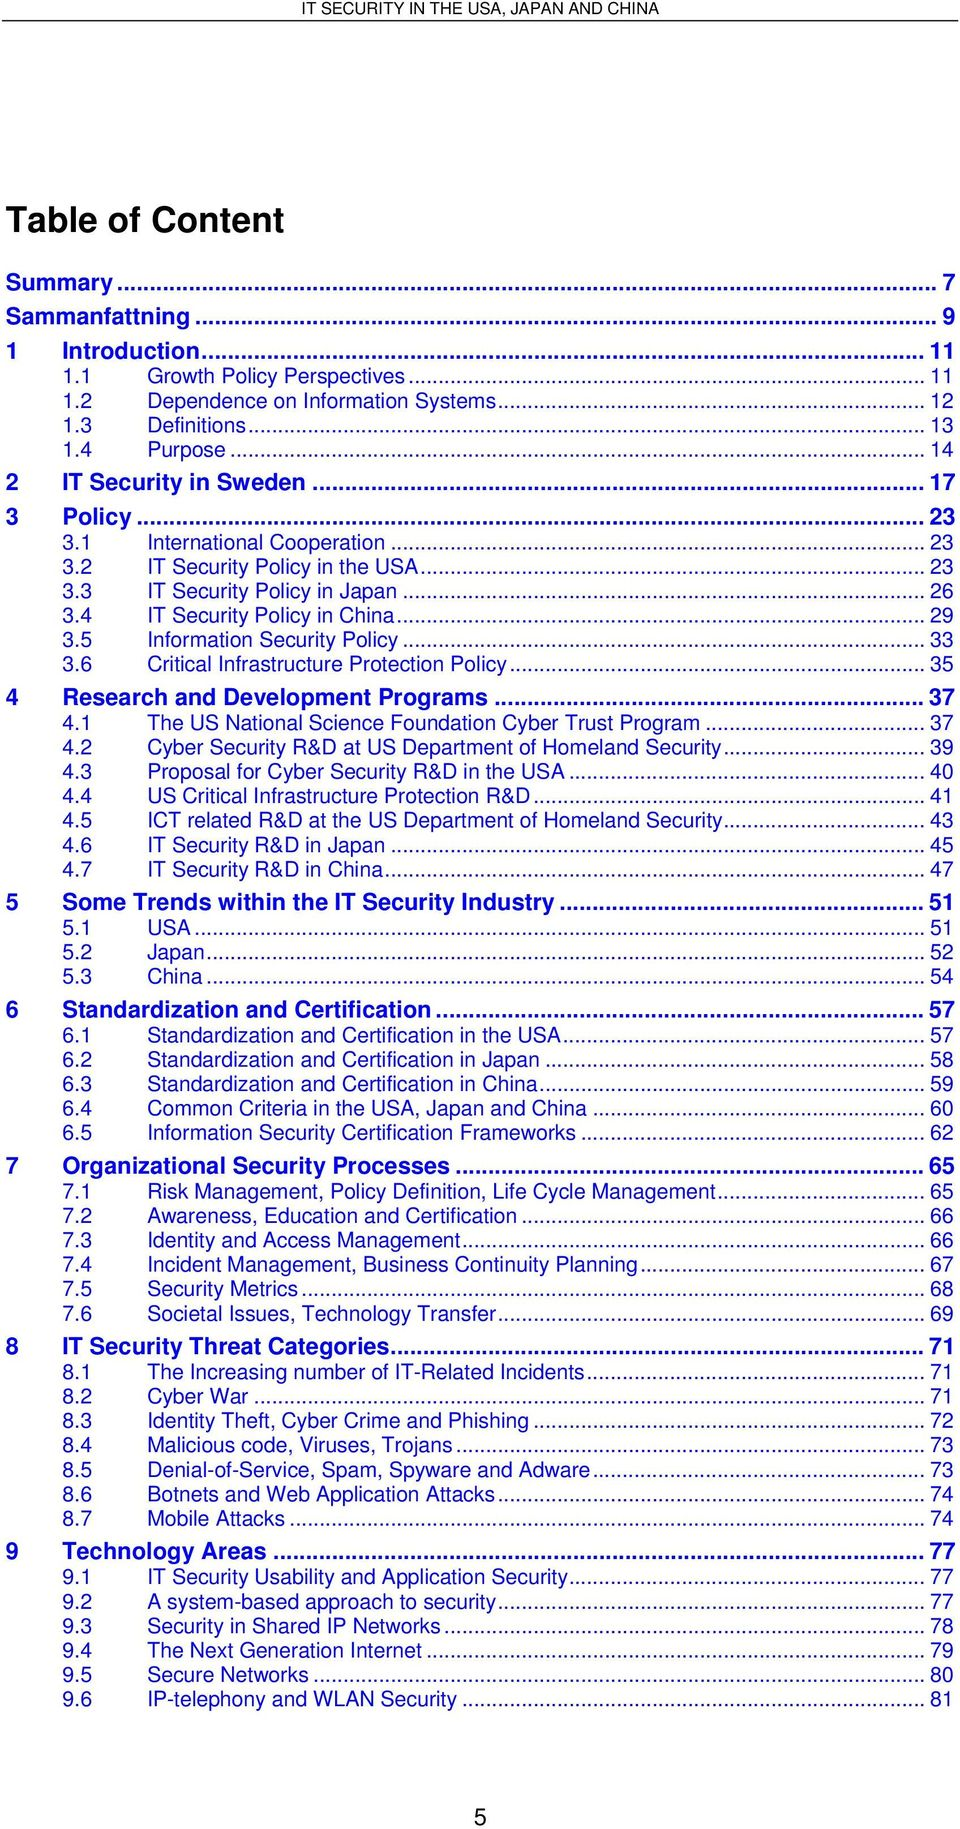 .. 29 3.5 Information Security Policy... 33 3.6 Critical Infrastructure Protection Policy... 35 4 Research and Development Programs... 37 4.1 The US National Science Foundation Cyber Trust Program.